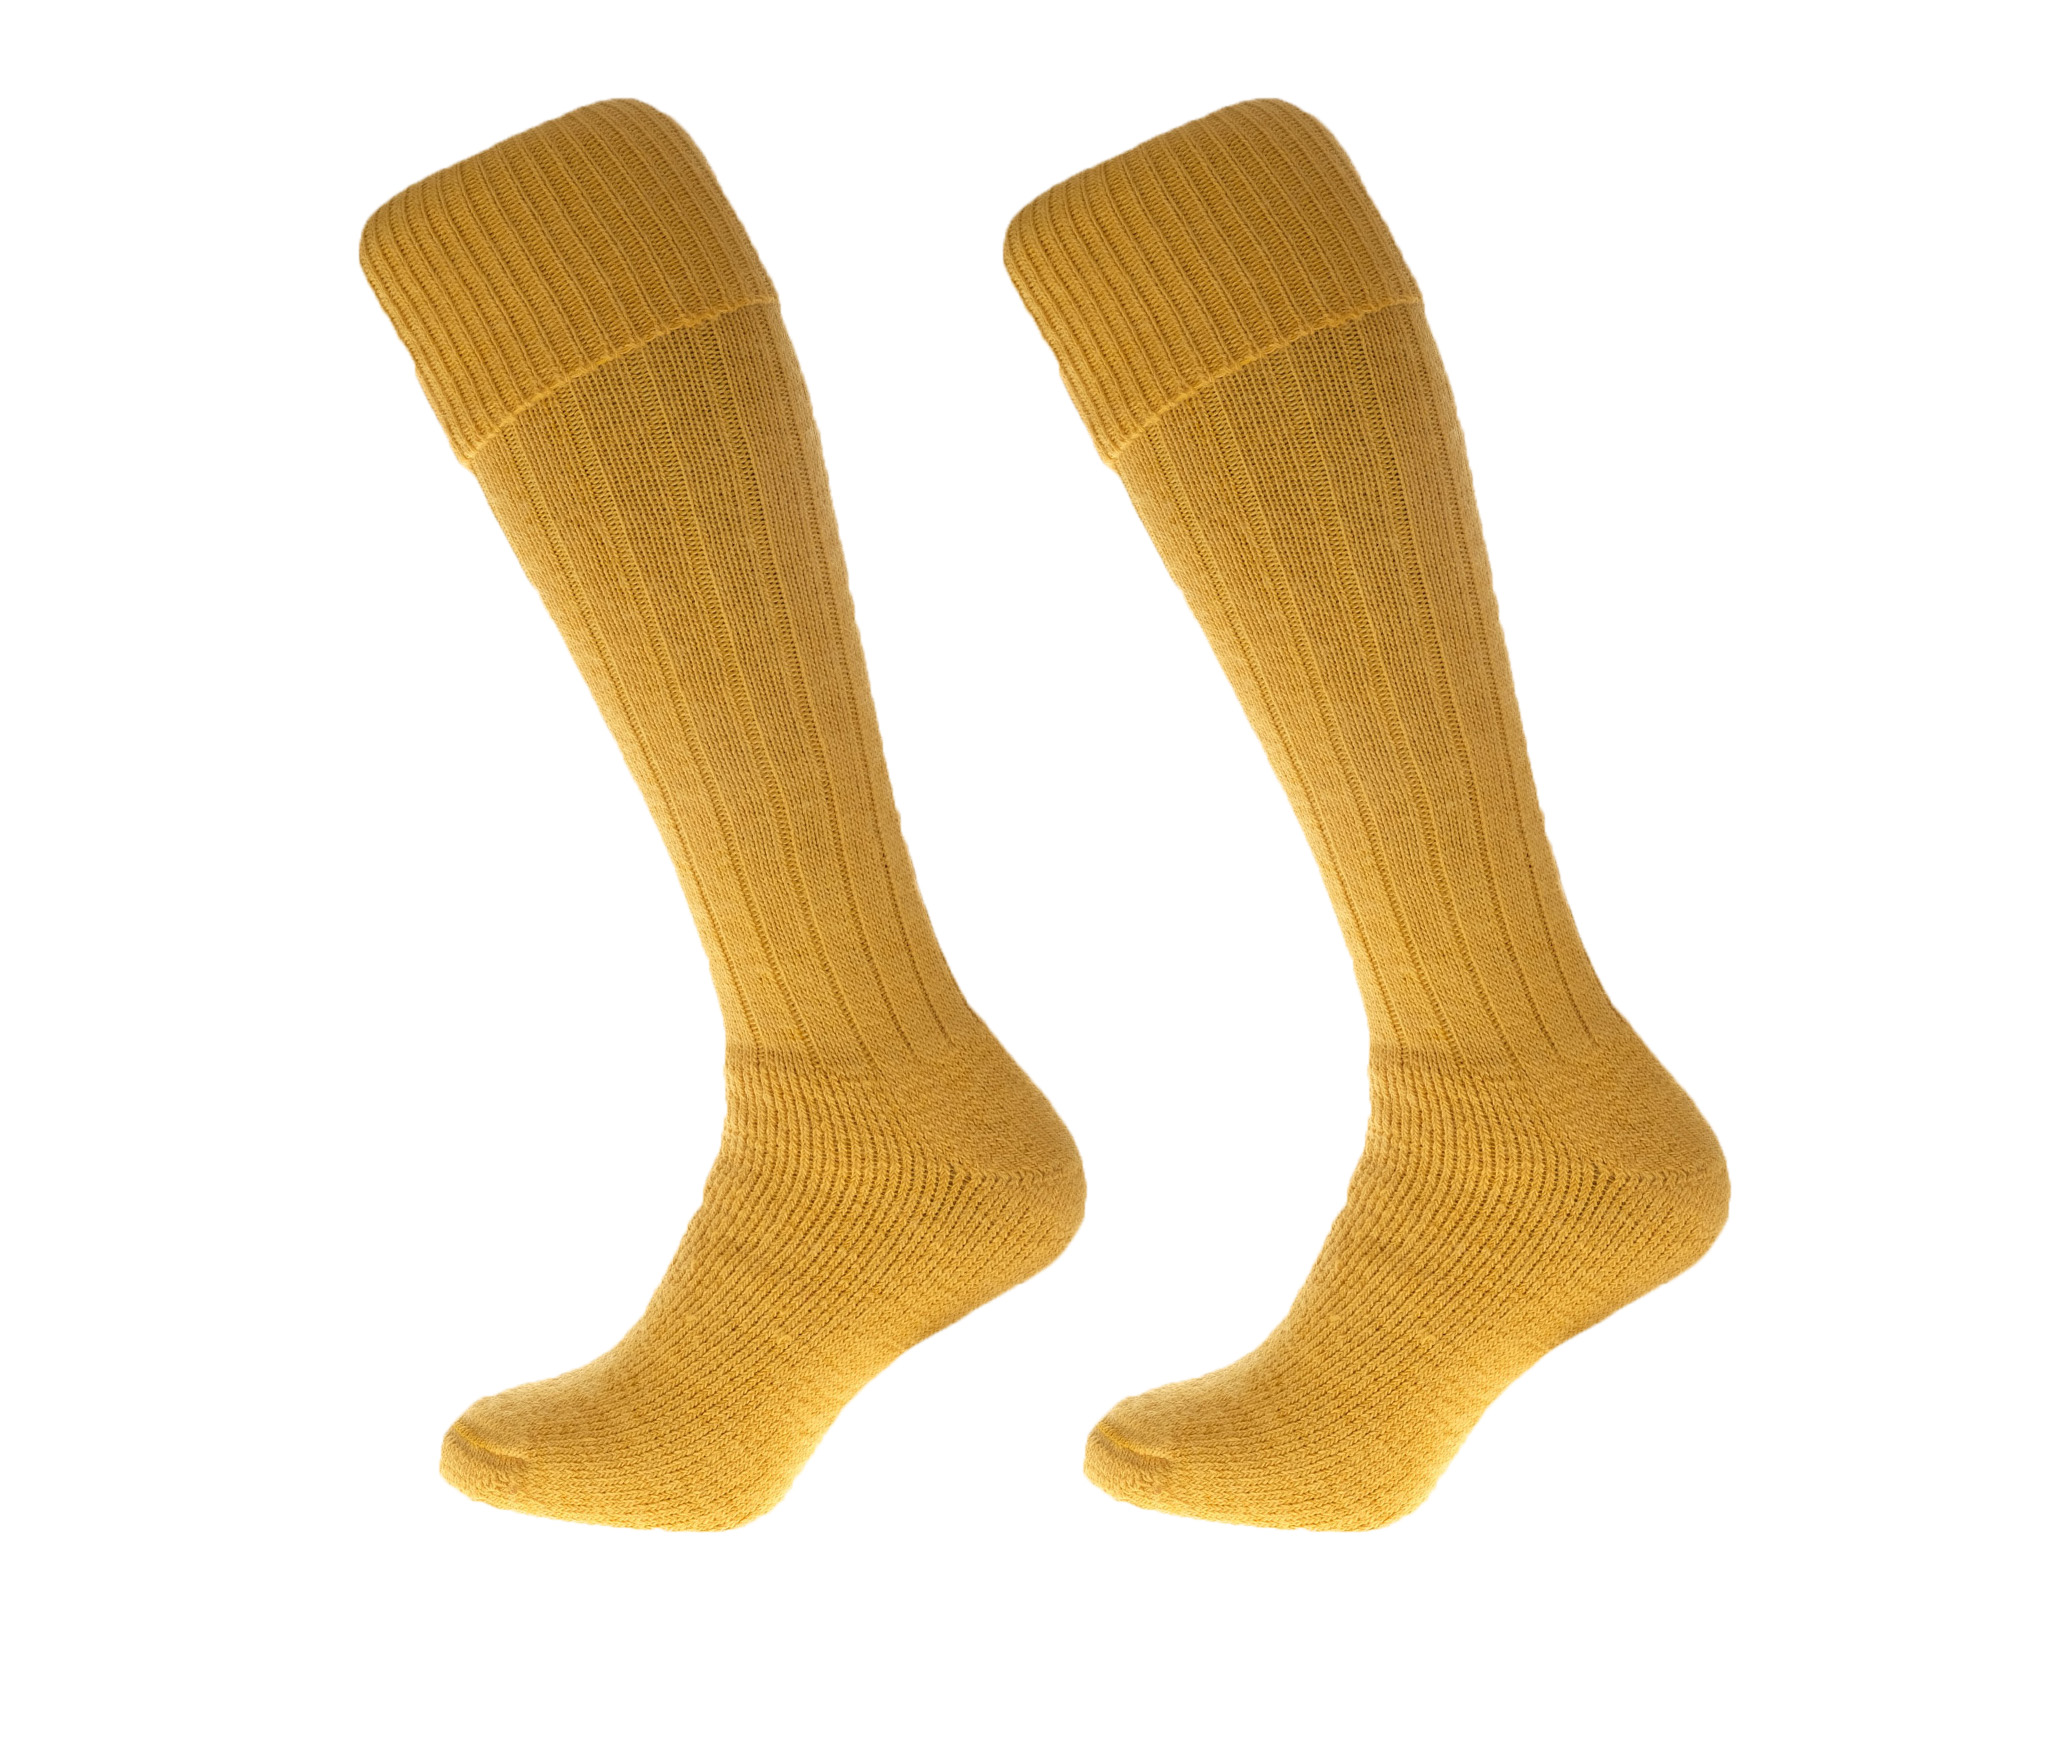 Alpaca Wool Long Country Socks Mustard Yellow 75% Alpaca Wool cushioned sole and Heel